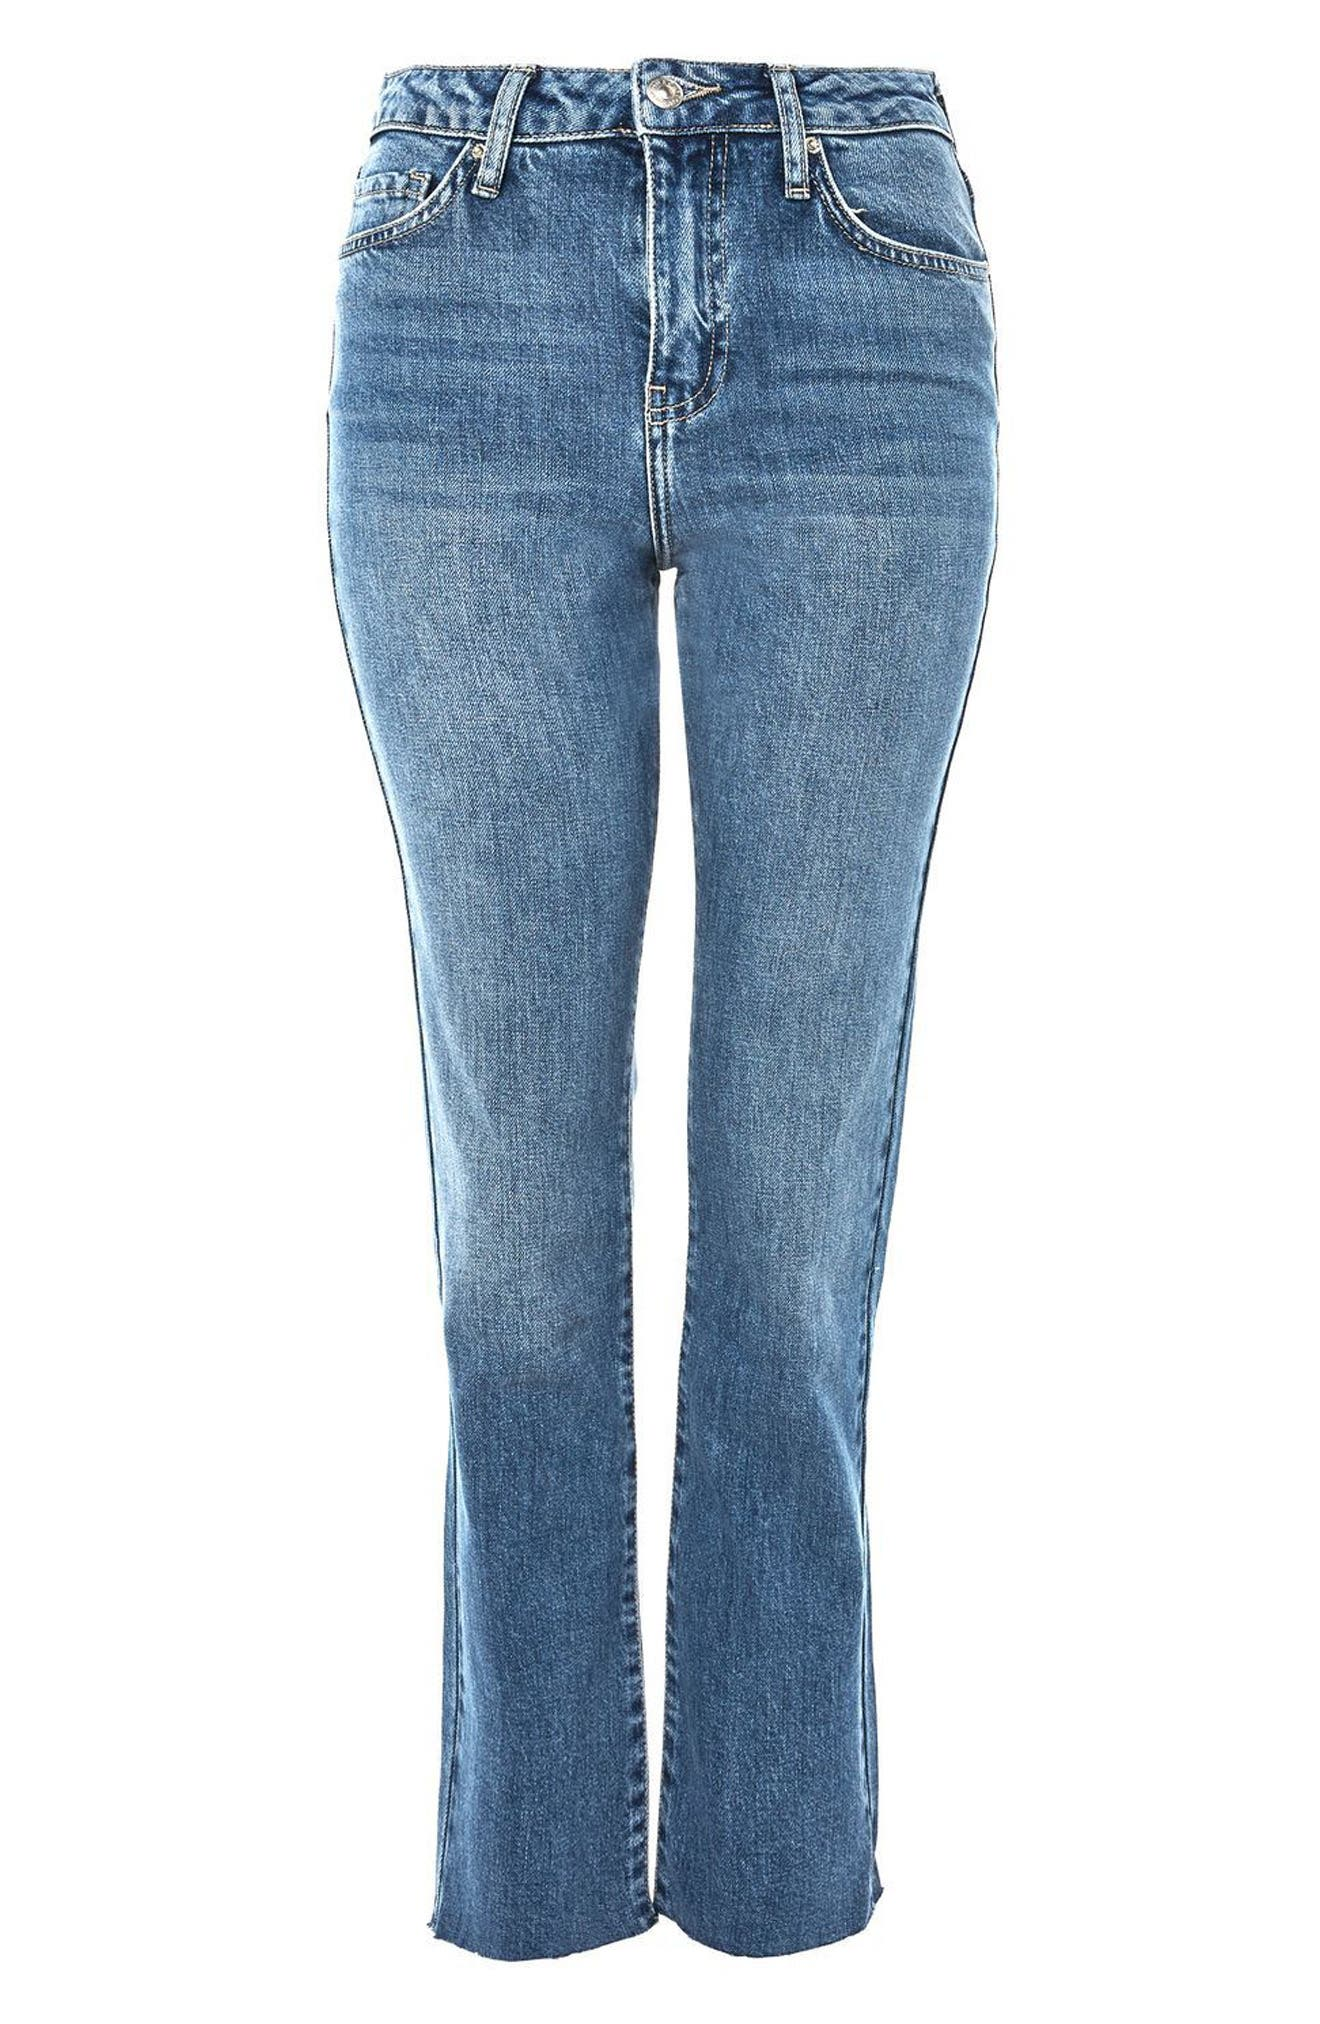 Alternate Image 3  - Topshop Dree Raw Hem Crop Flare Jeans (Tall)